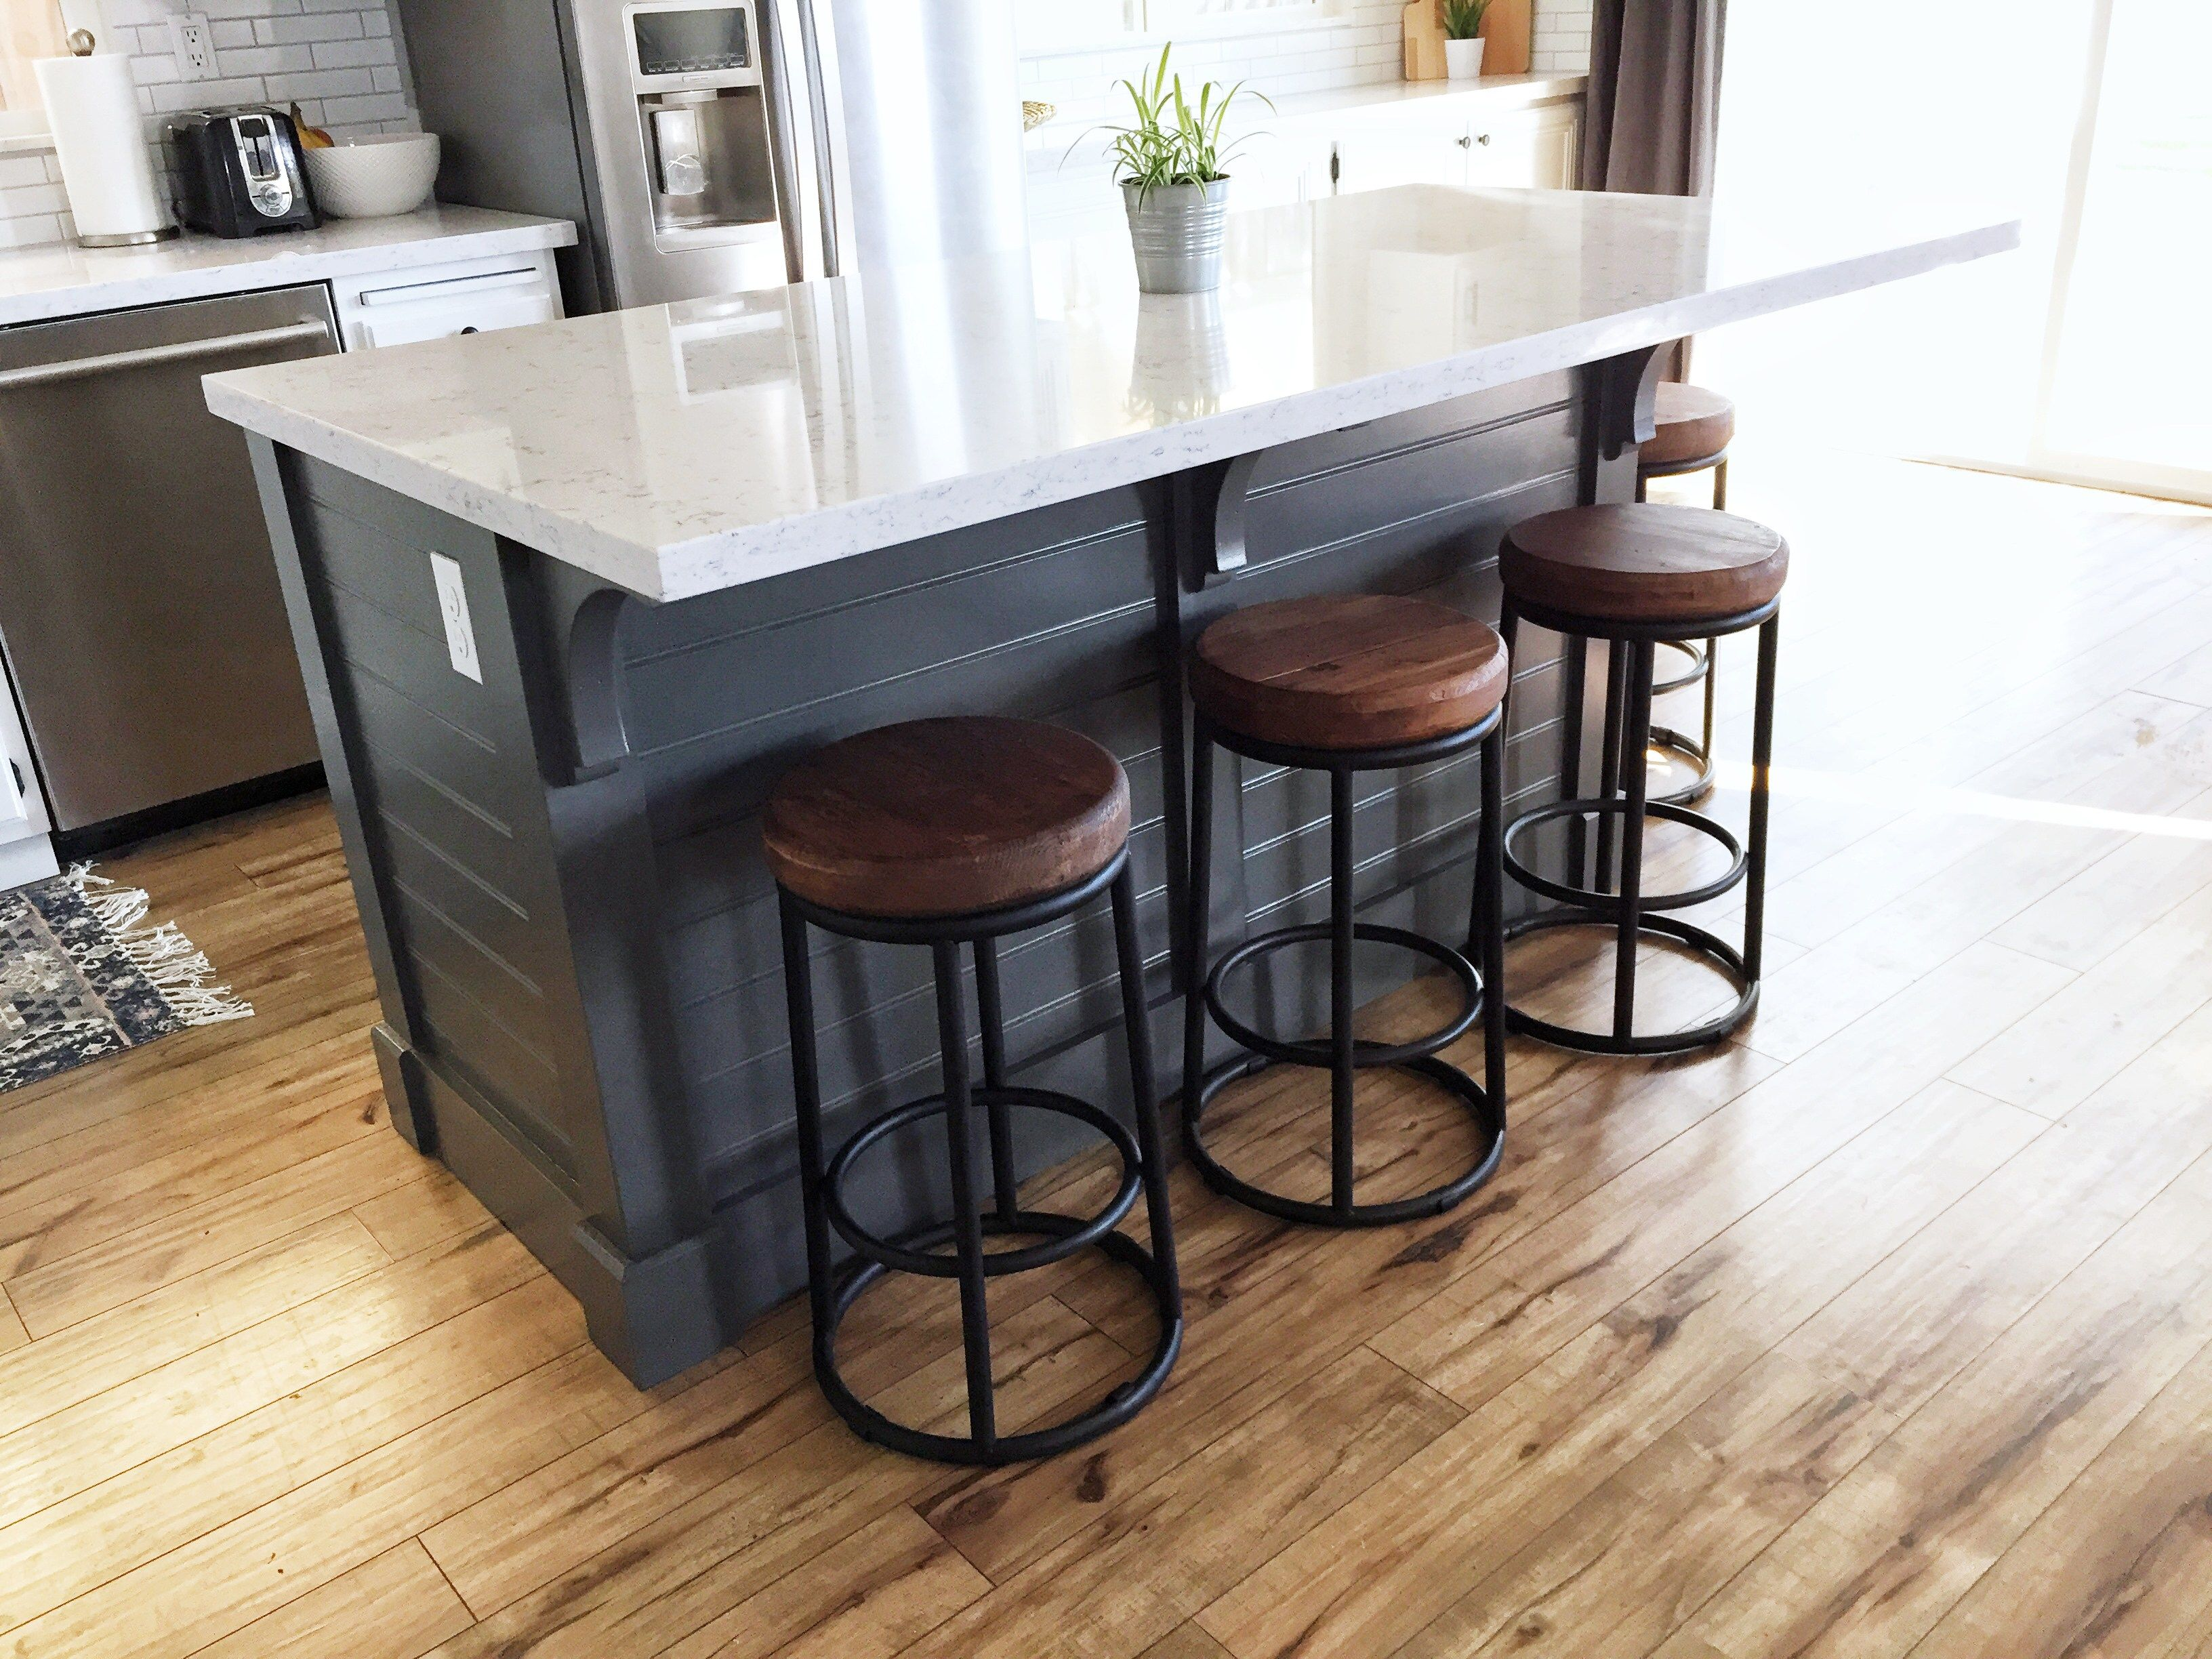 Kitchen Island Make It Yourself Save Big Pinterest